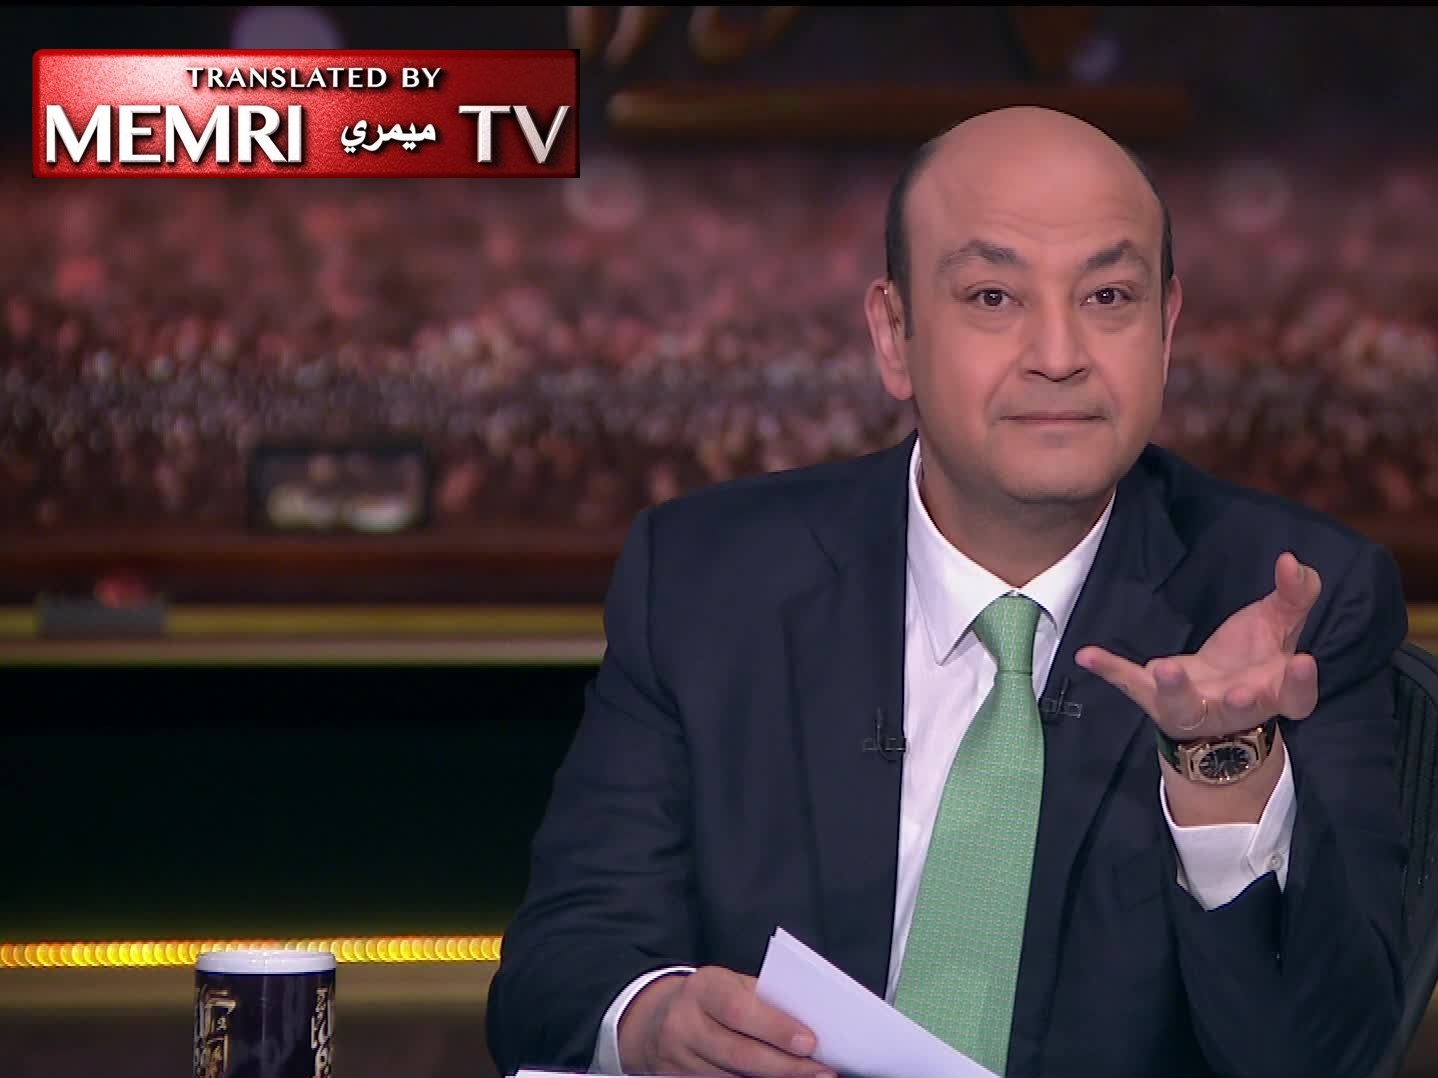 Following Douma Attack, Egyptian TV Host Amr Adeeb Says: We Have Brought Shame upon Humanity